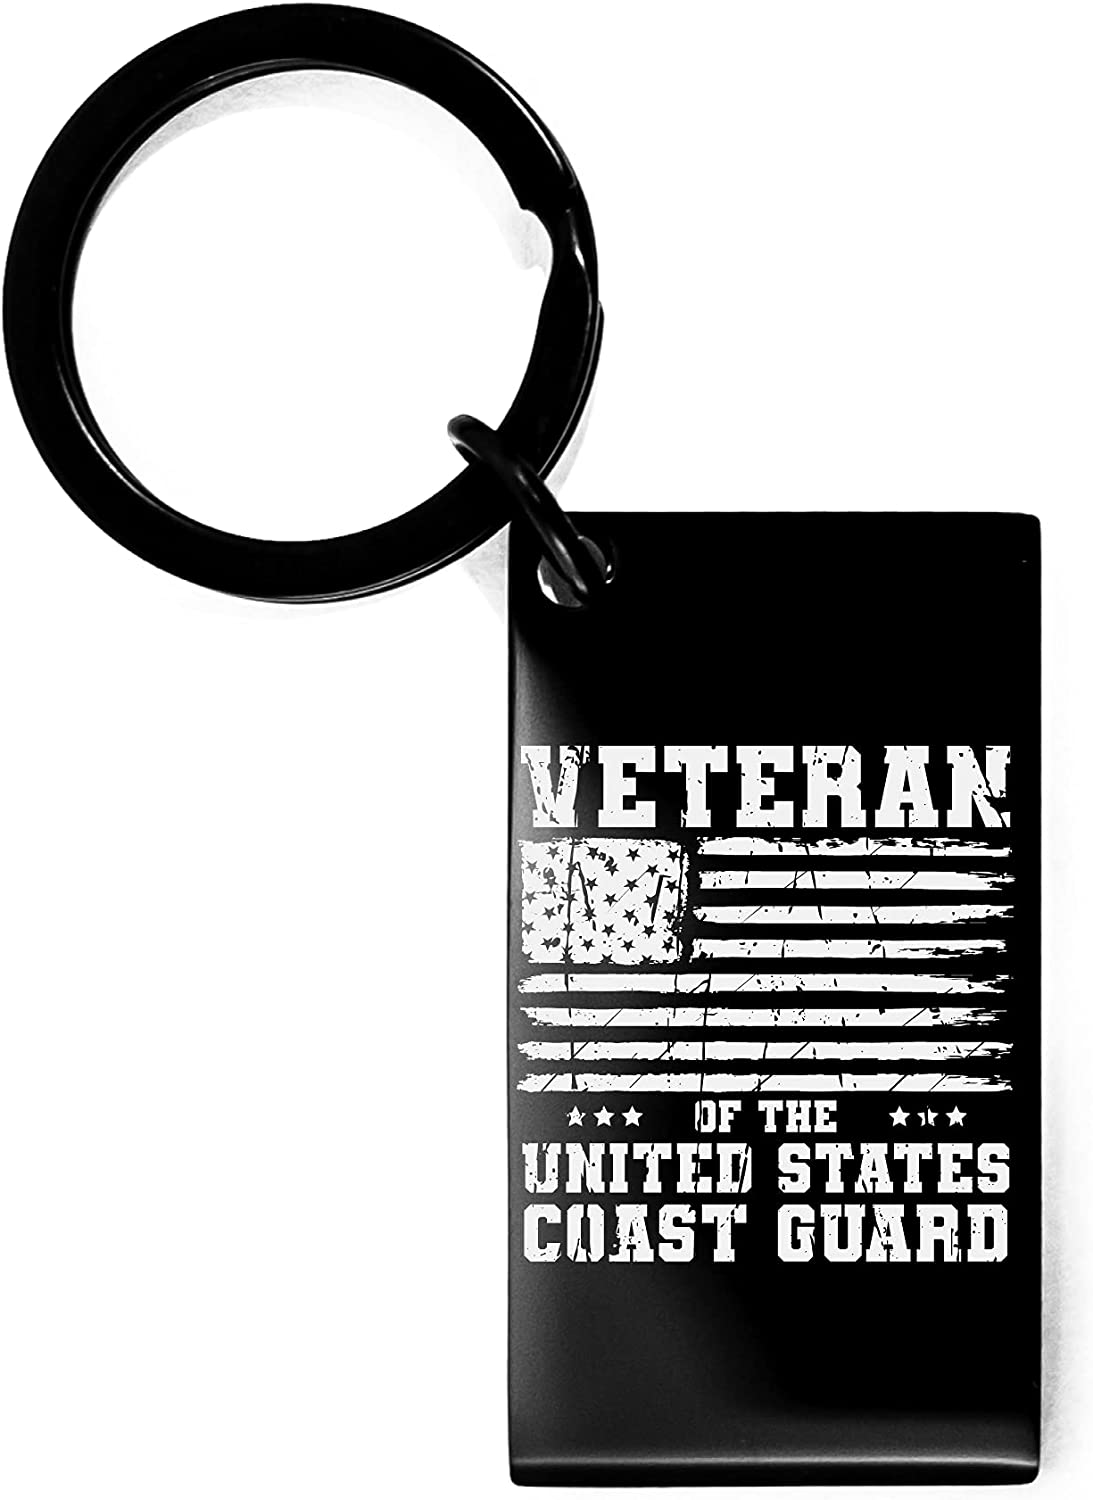 United States Coast Guard Keychain Gifts USCG Christmas Gifts for USCG Flag Veteran Birthday Gifts for United States Coast Guard Engraved Black Keychain Veteran of the United States Coast Guard